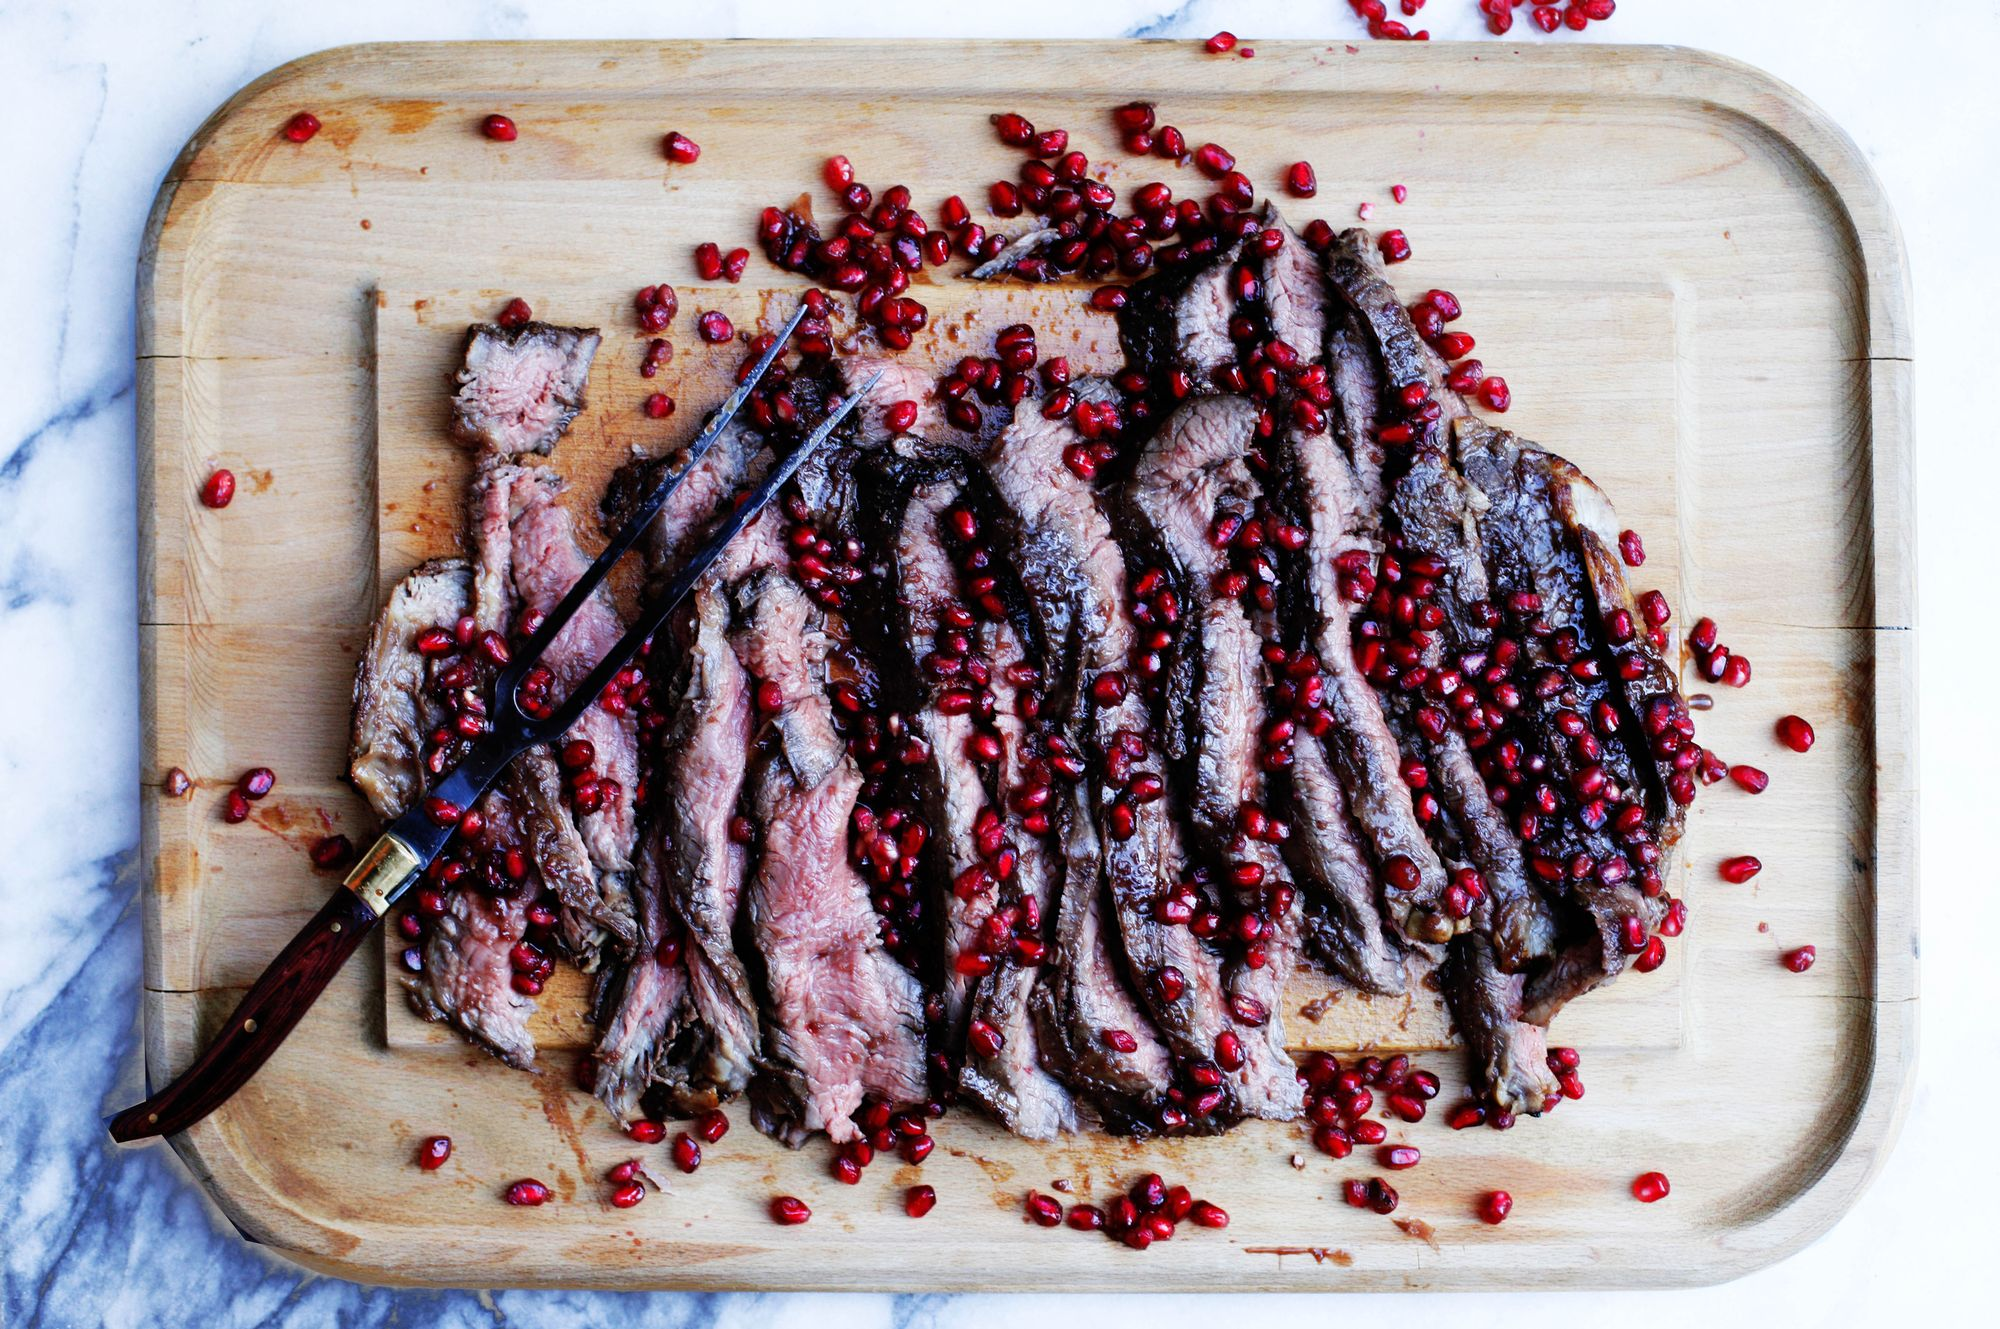 Pomegranate Flank Steak